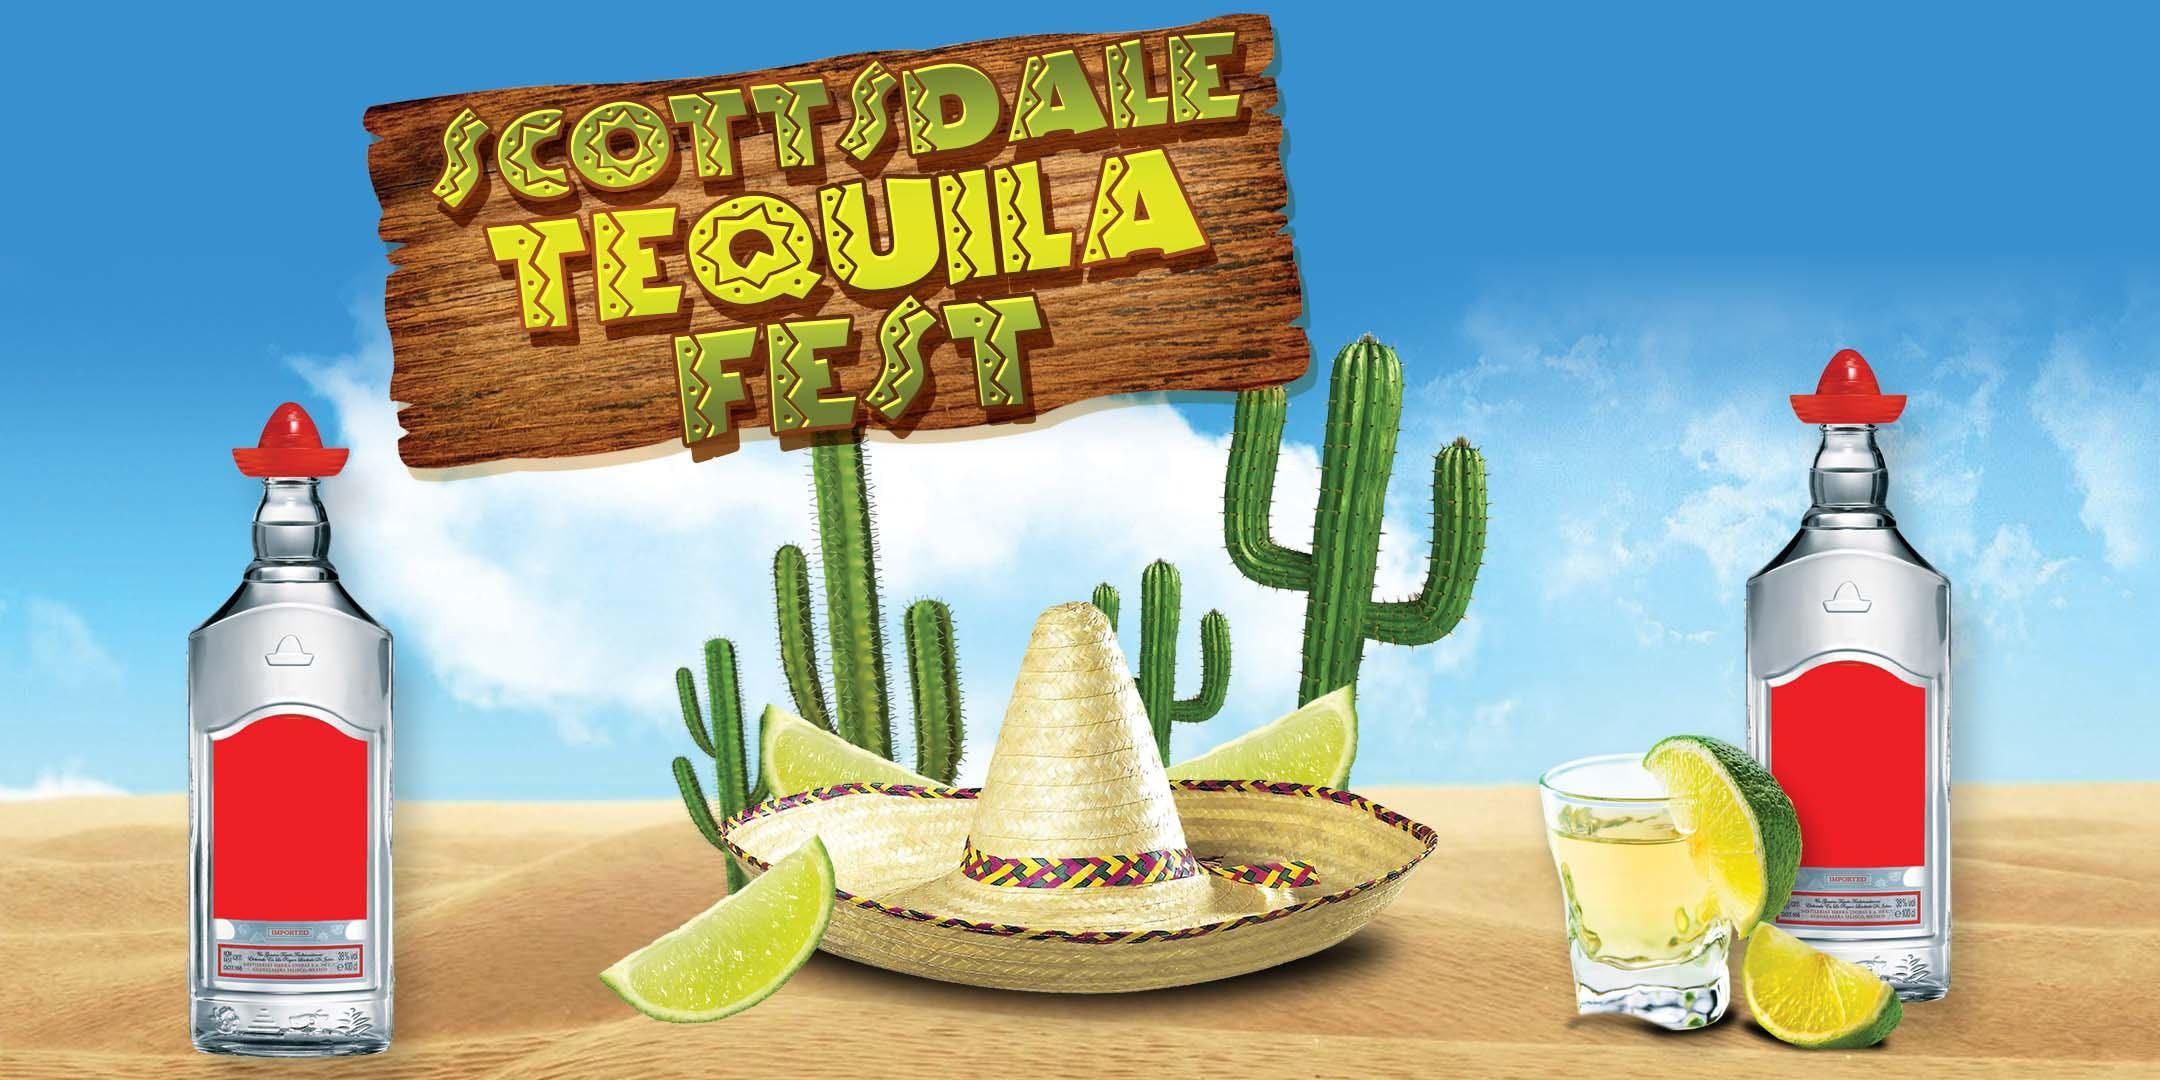 2019 Scottsdale Tequila Fest - Tequila Tasting in Old Town!